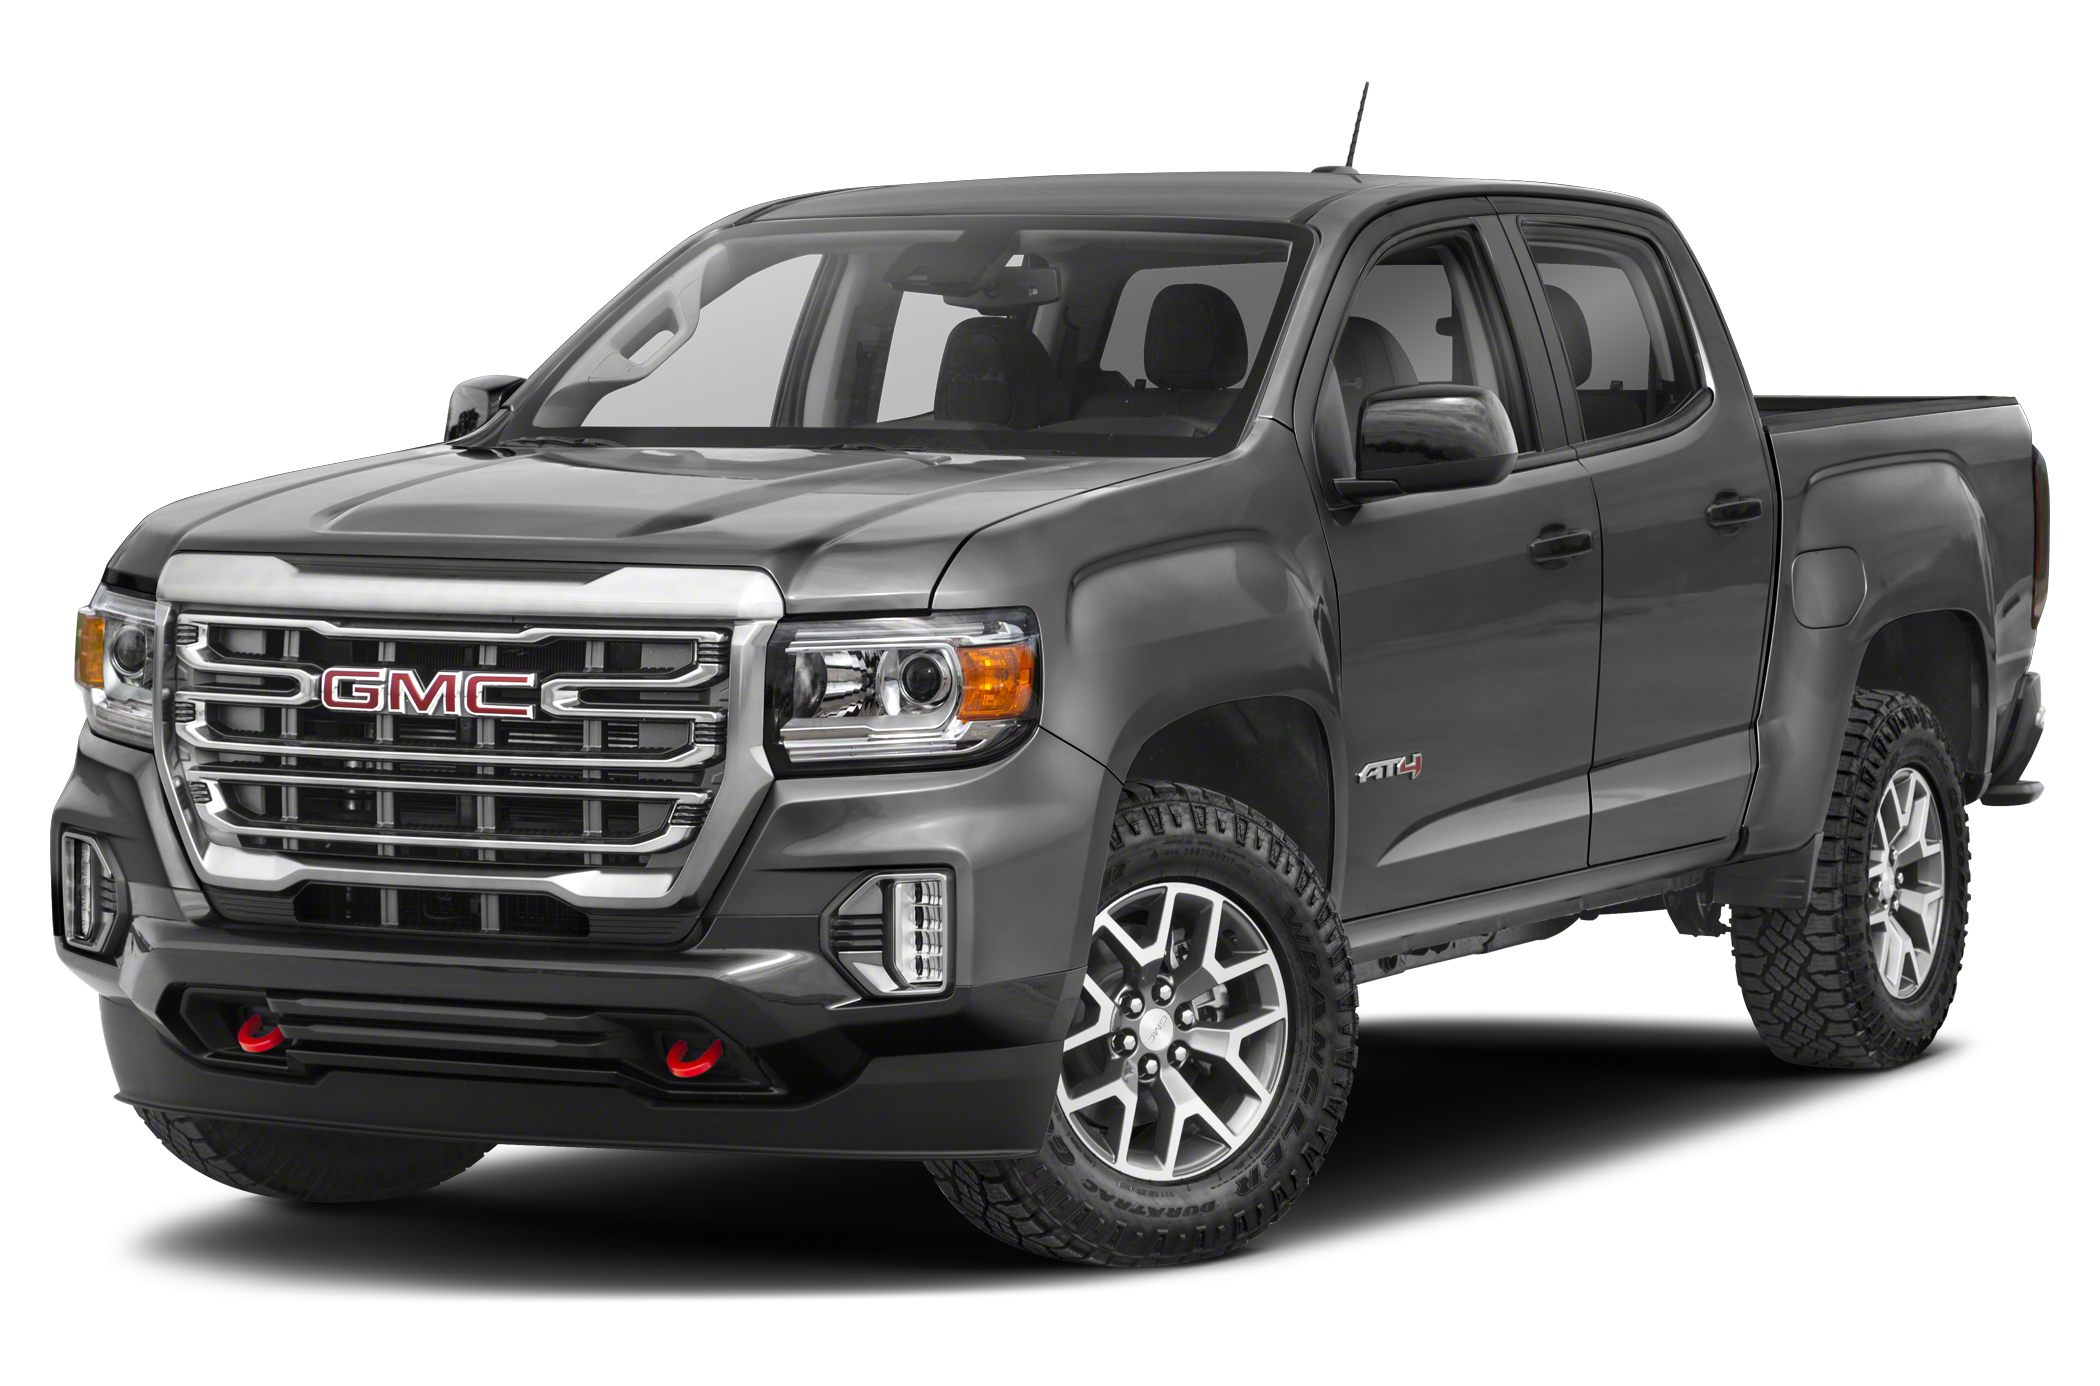 2021 Gmc Canyon Elevation Standard 4x2 Crew Cab 5 Ft Box 128 3 In Wb Pictures